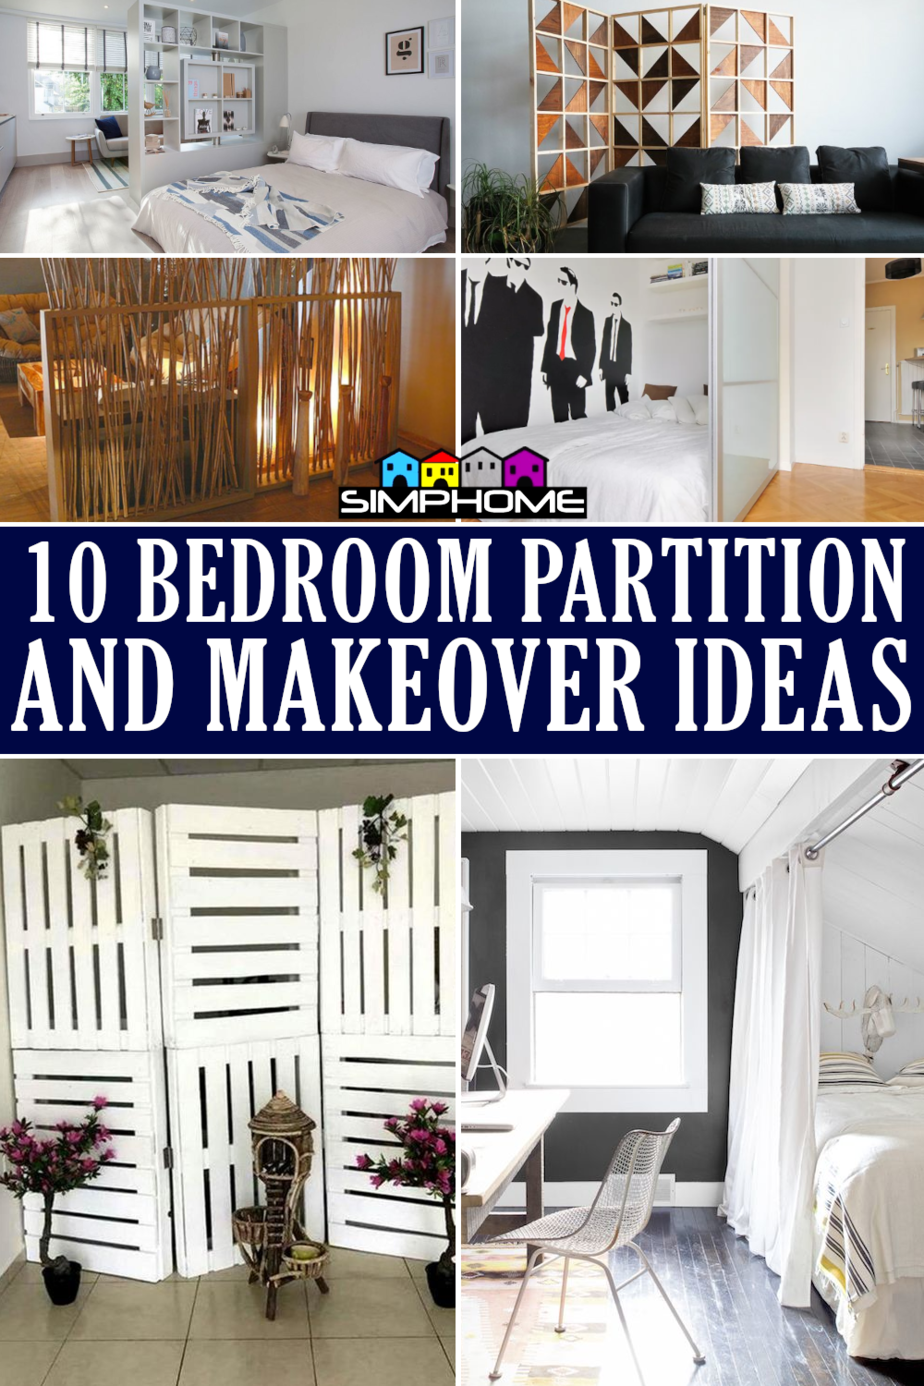 bedroom partitions and makeover ideas via simphome.com featured image